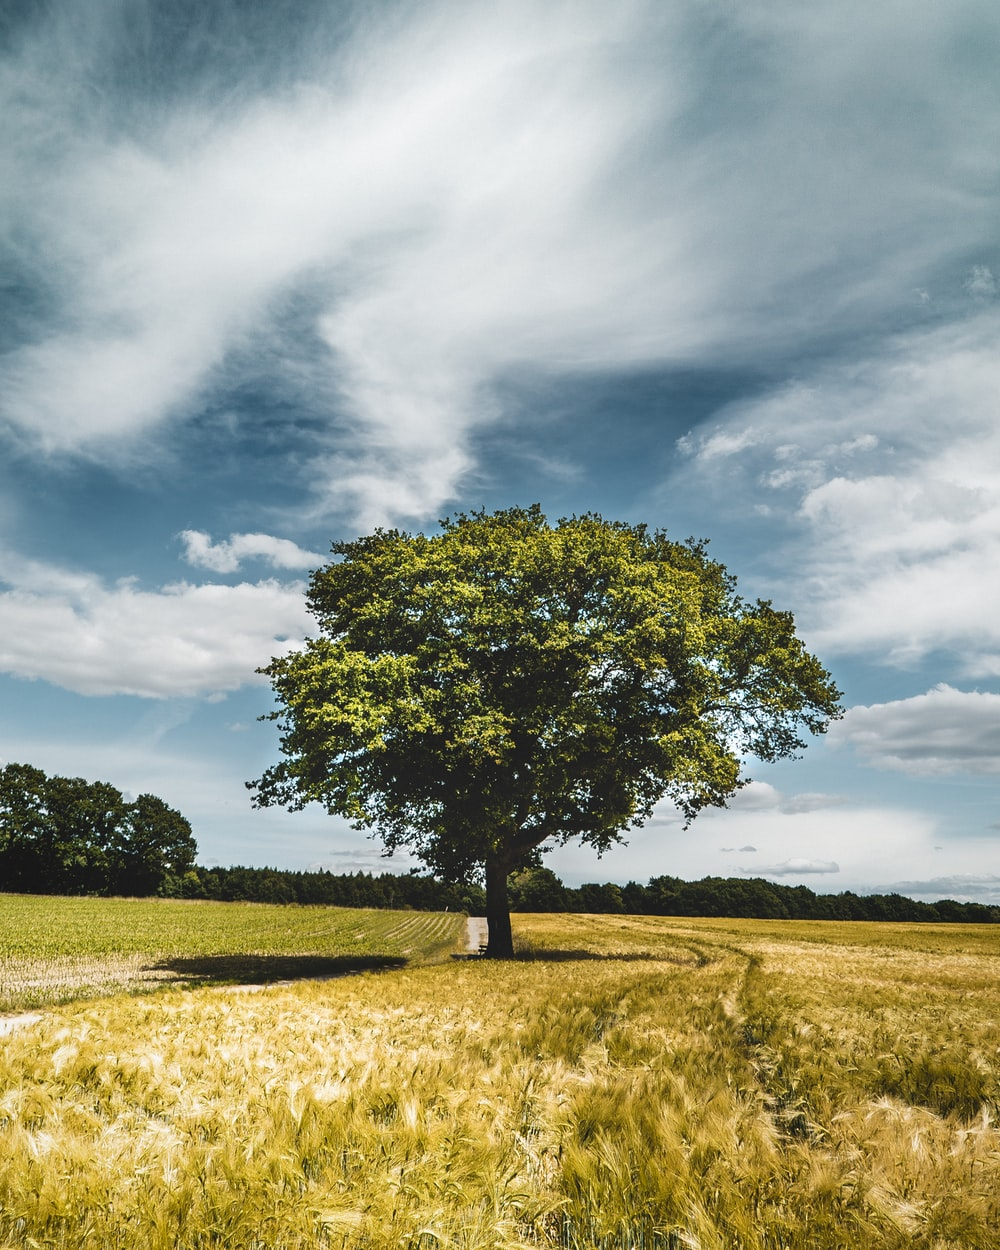 green tree on green grass field under white clouds and blue sky during daytime